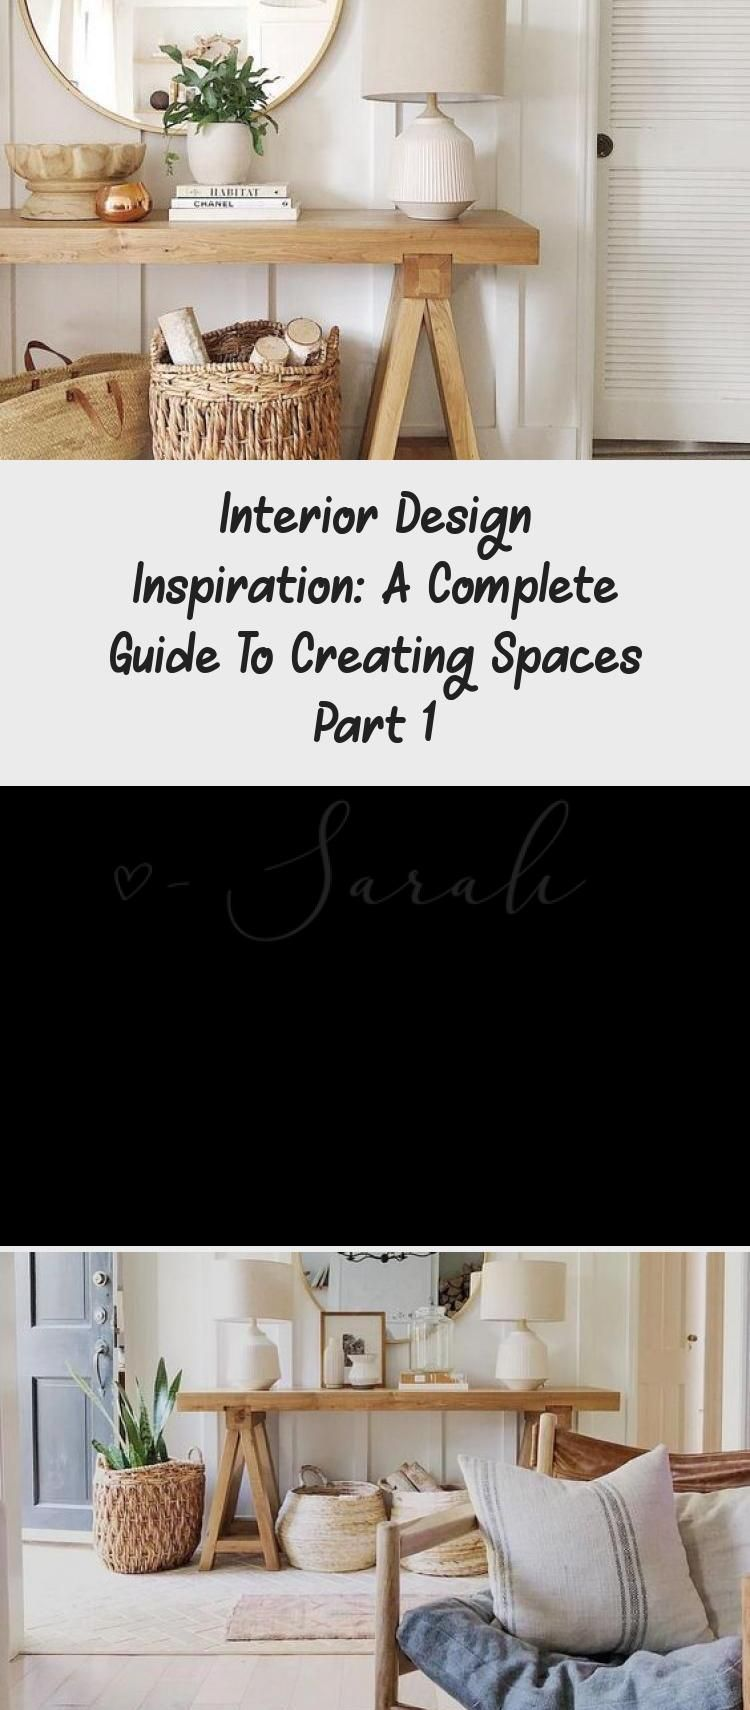 Do you struggle to take a space from dream to reality? Join me for a complete guide to creating spaces you love, starting with interior design inspiration! #fromhousetohaven #interiordesigninspiration #homedecor #interiordesign #Traditionalinteriordesign #interiordesignTrends #Bohointeriordesign #interiordesignEclectic #Moderninteriordesign